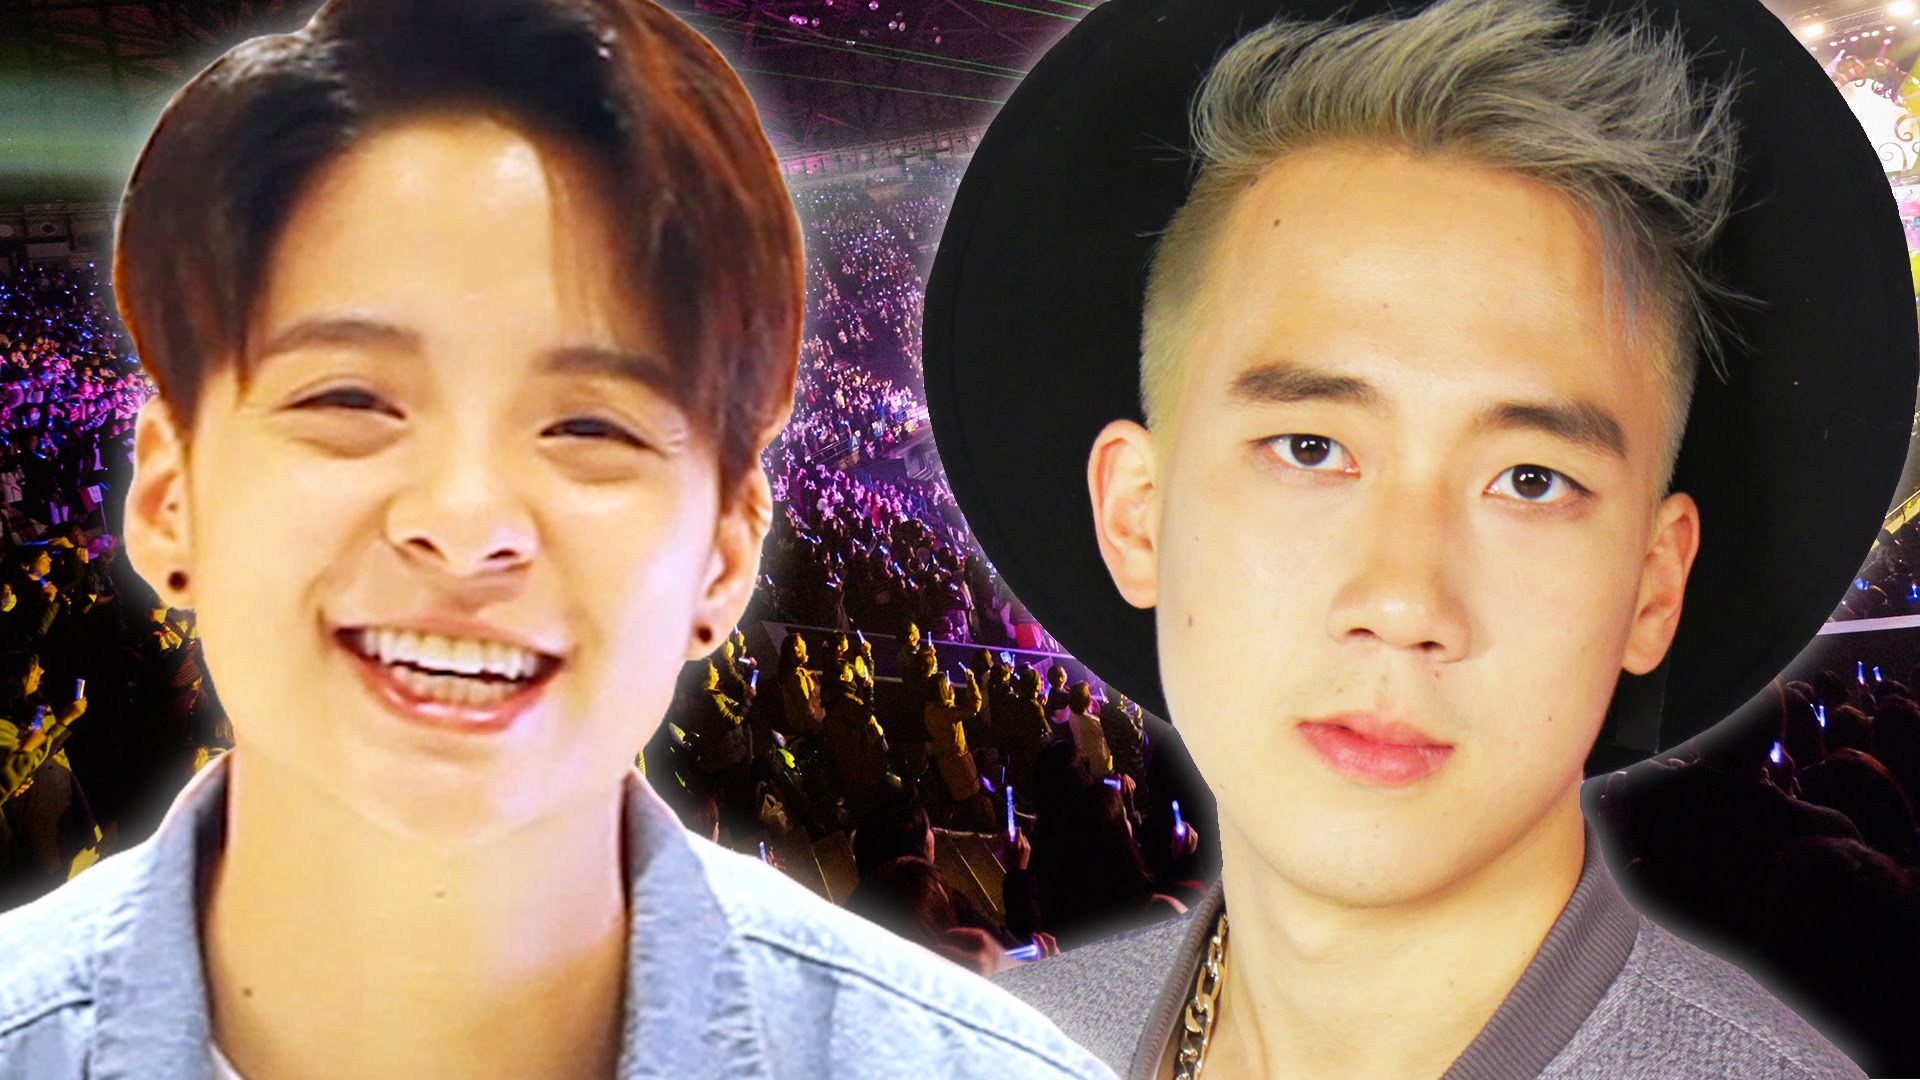 Buzzfeed's Steven Trains Like A K-Pop Star In Video Featuring Amber Liu